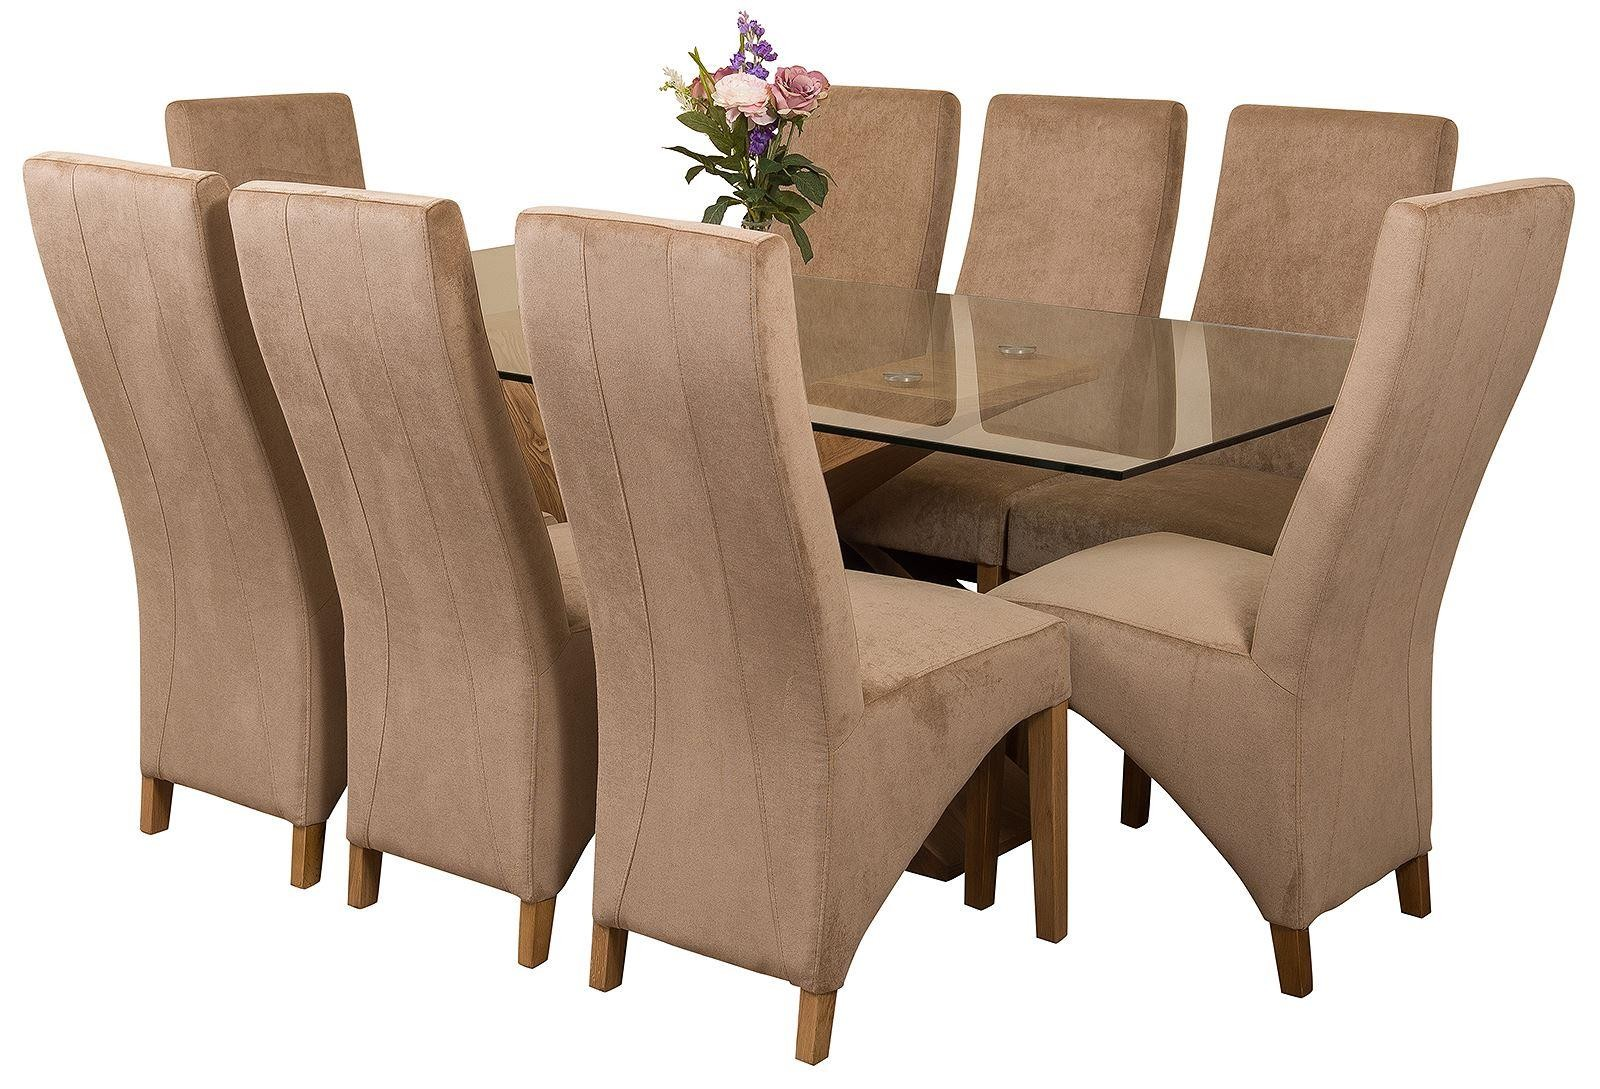 Valencia Oak 200cm Wood and Glass Dining Table with 8 Lola Dining Chairs [Beige Fabric]